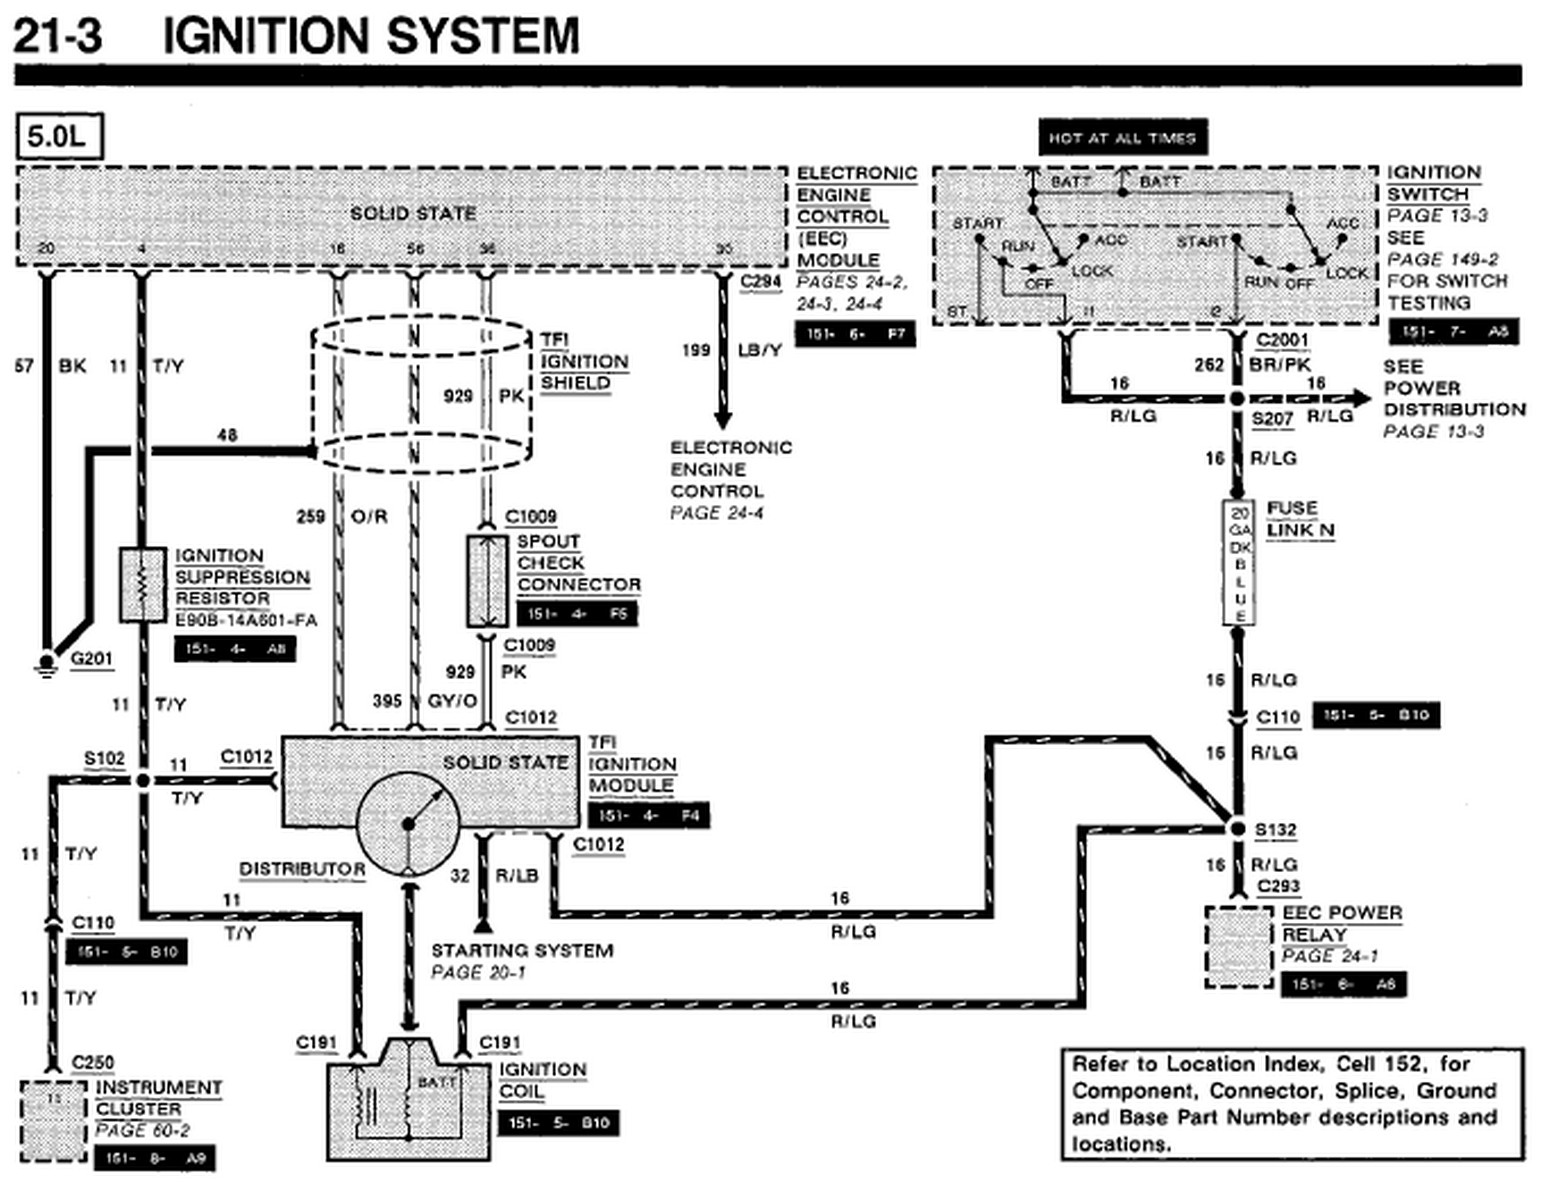 93 mustang wiring diagram ignition wiring diagram 93 mustang ignition wiring diagram 93 mustang at aneh.co